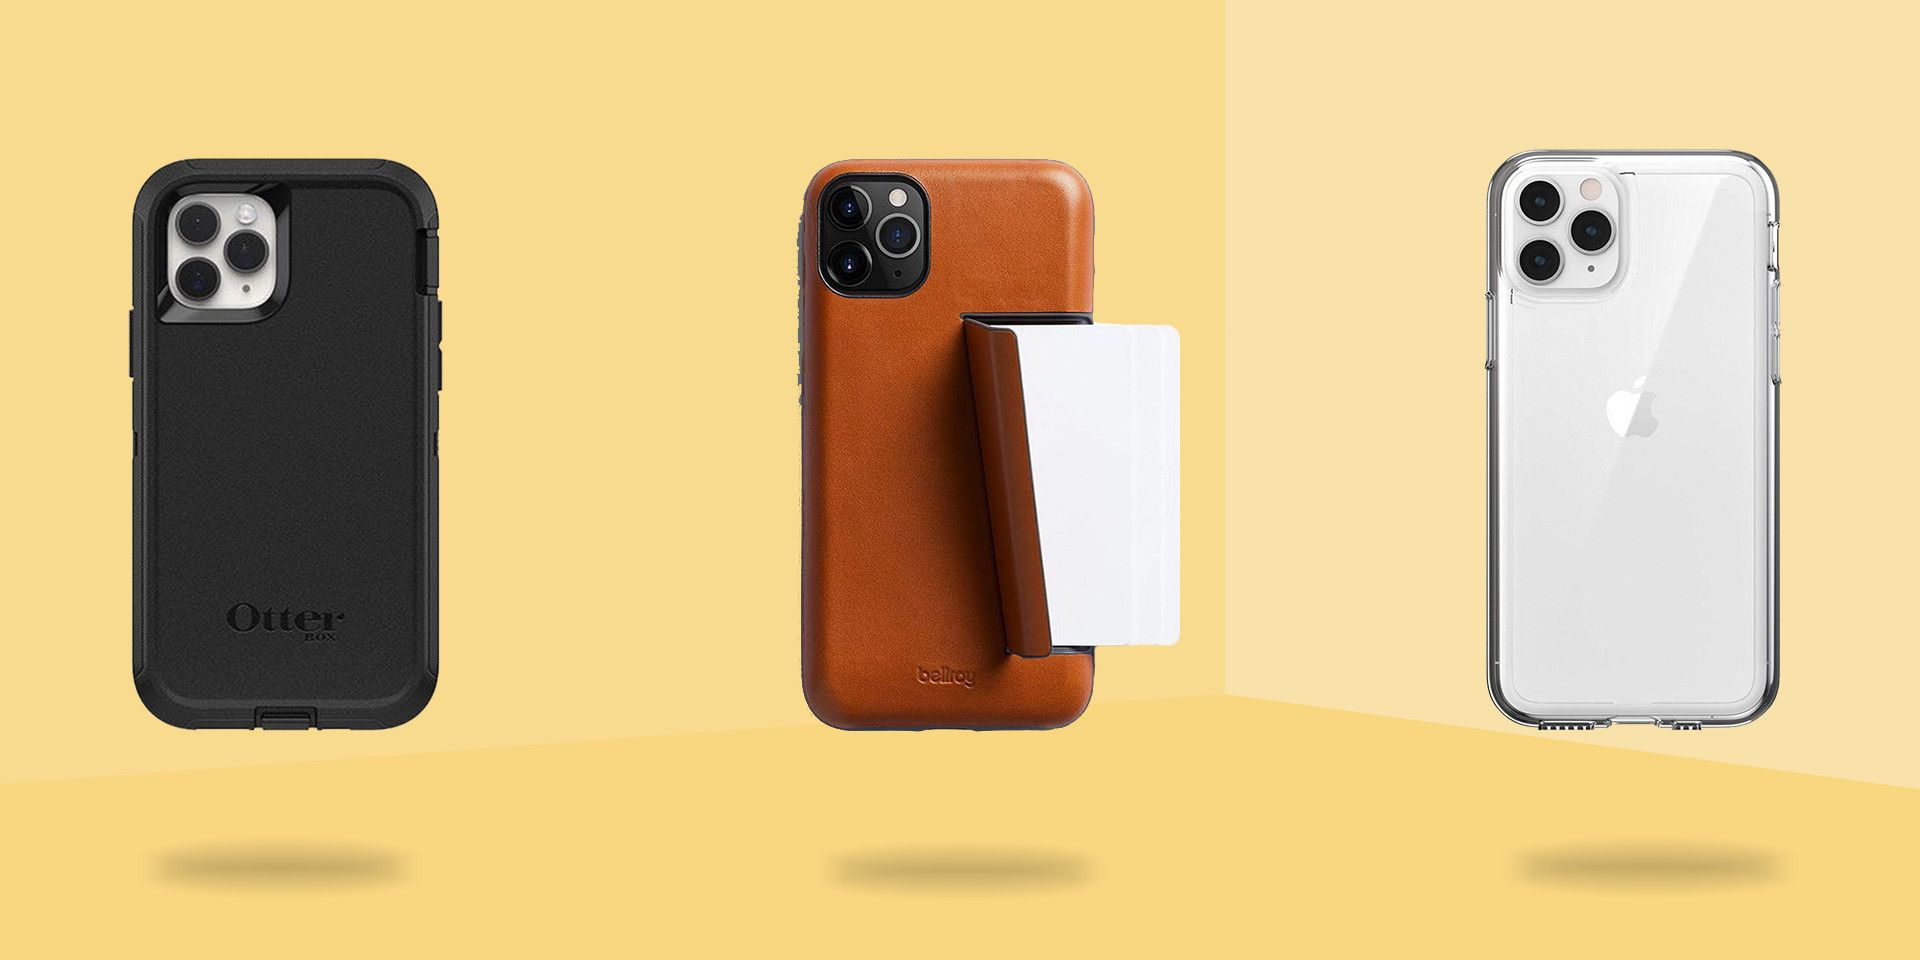 11 Best Iphone Cases 2019 Stylish Cases To Keep Your Phone Safe